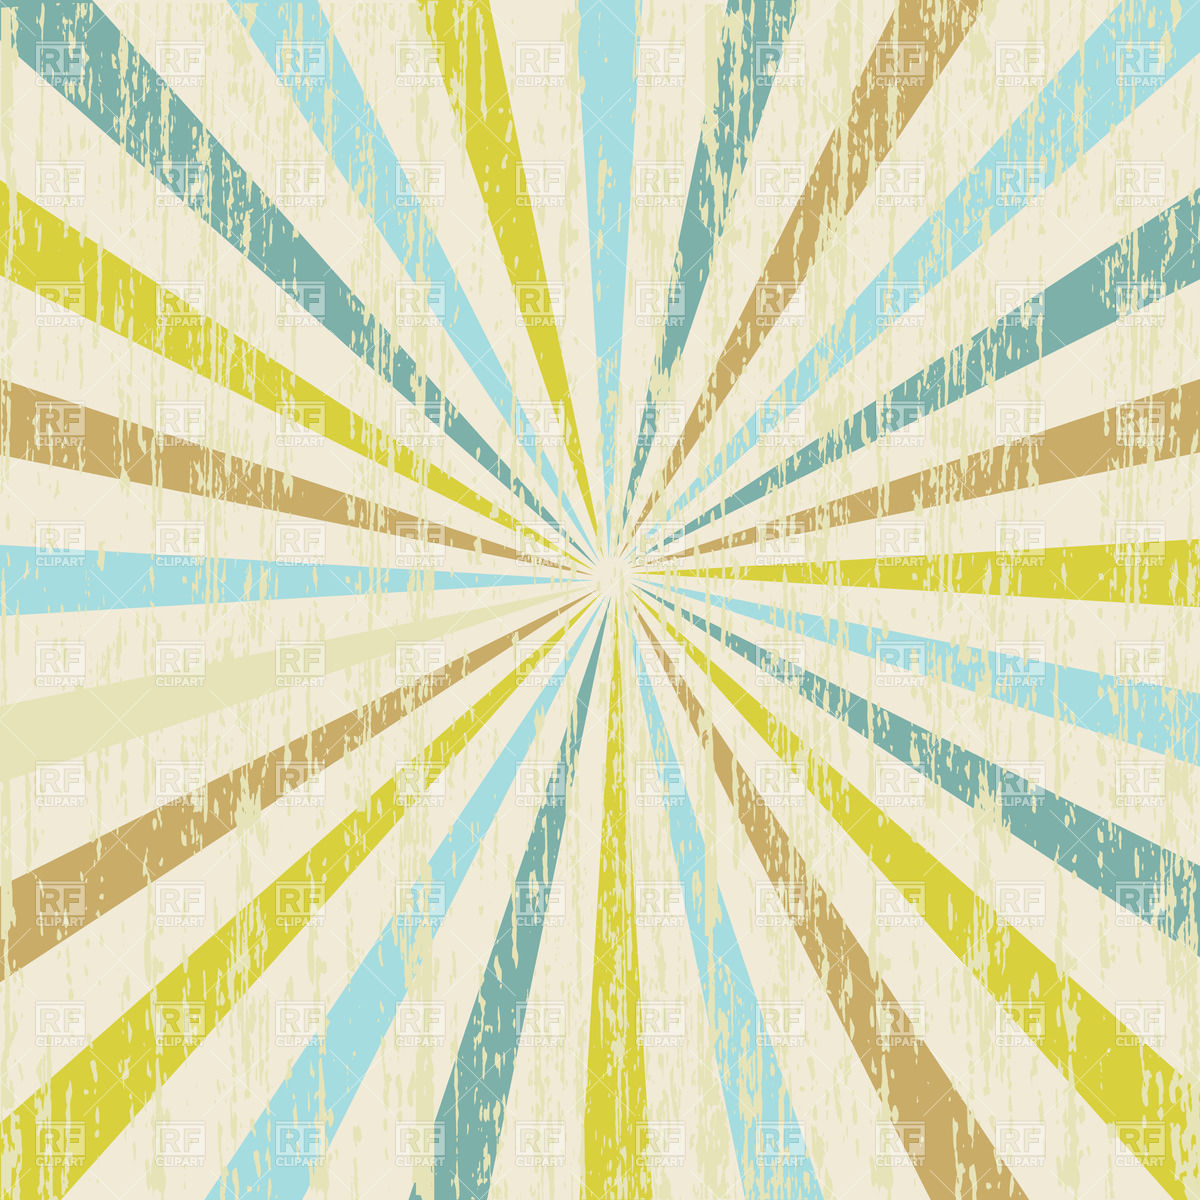 Royalty Free Vector Backgrounds at GetDrawings.com.